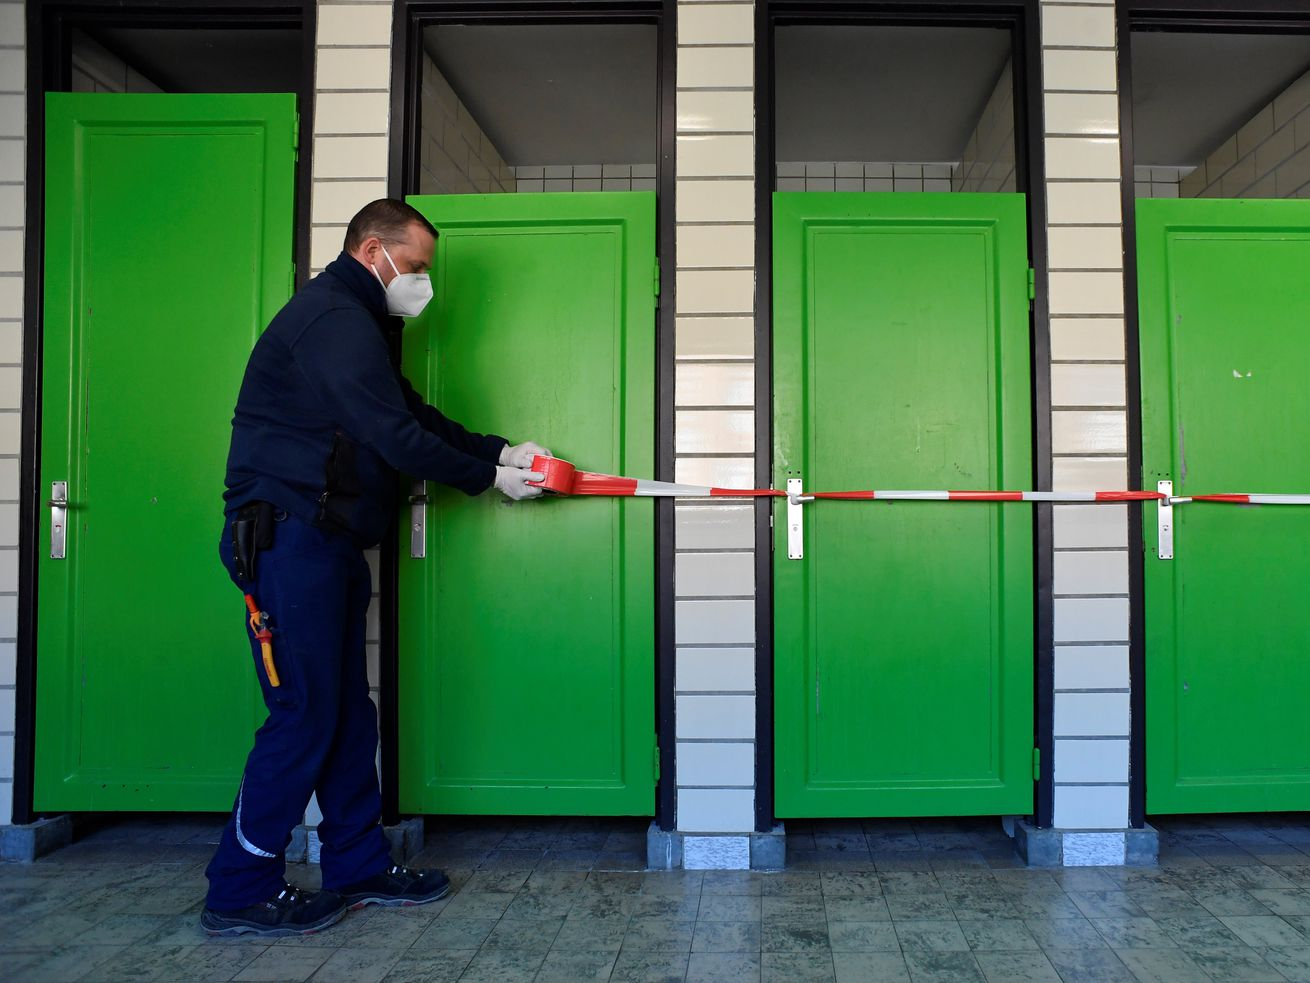 A man installs caution tape in front of bathroom stalls with green doors.